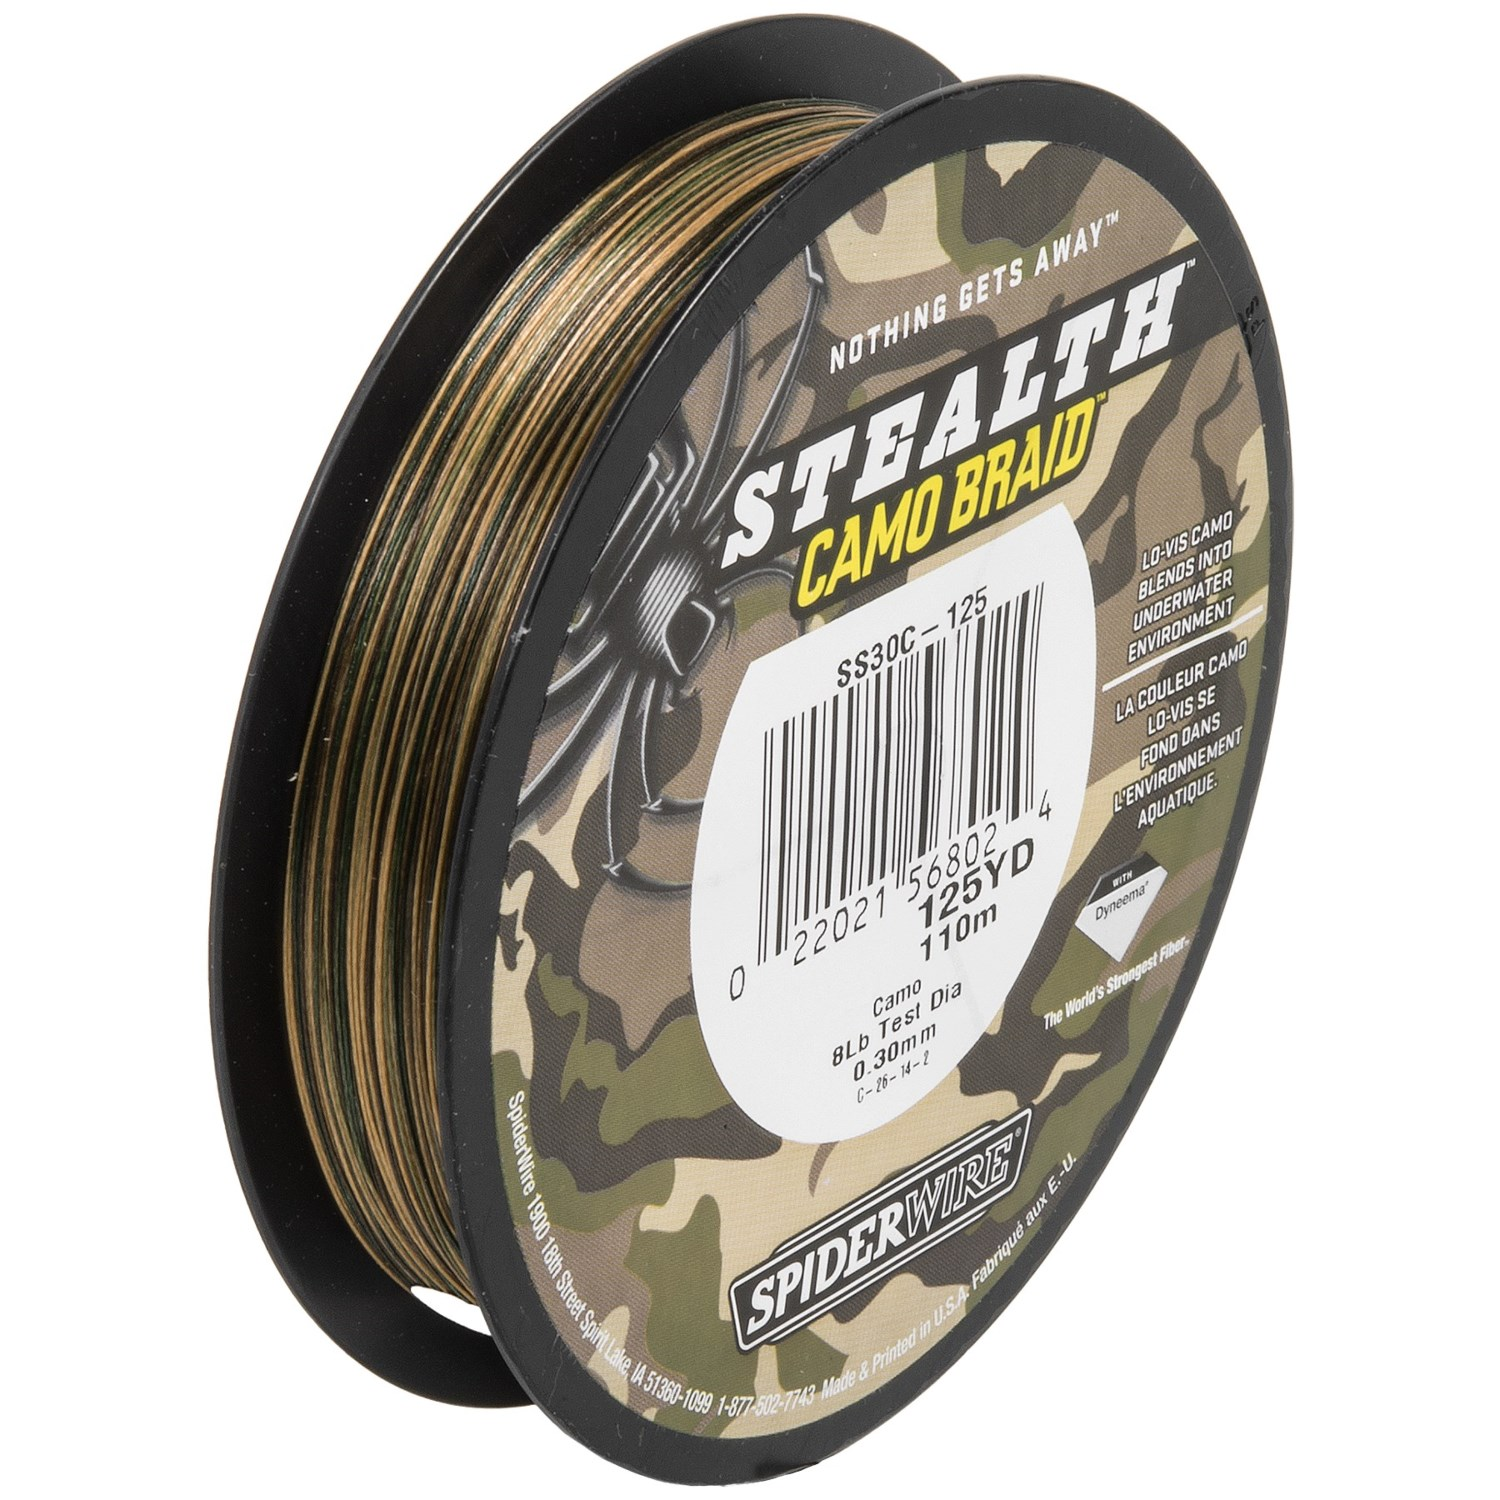 Spiderwire stealth camo braid fishing line 125 yds for Braid fishing line